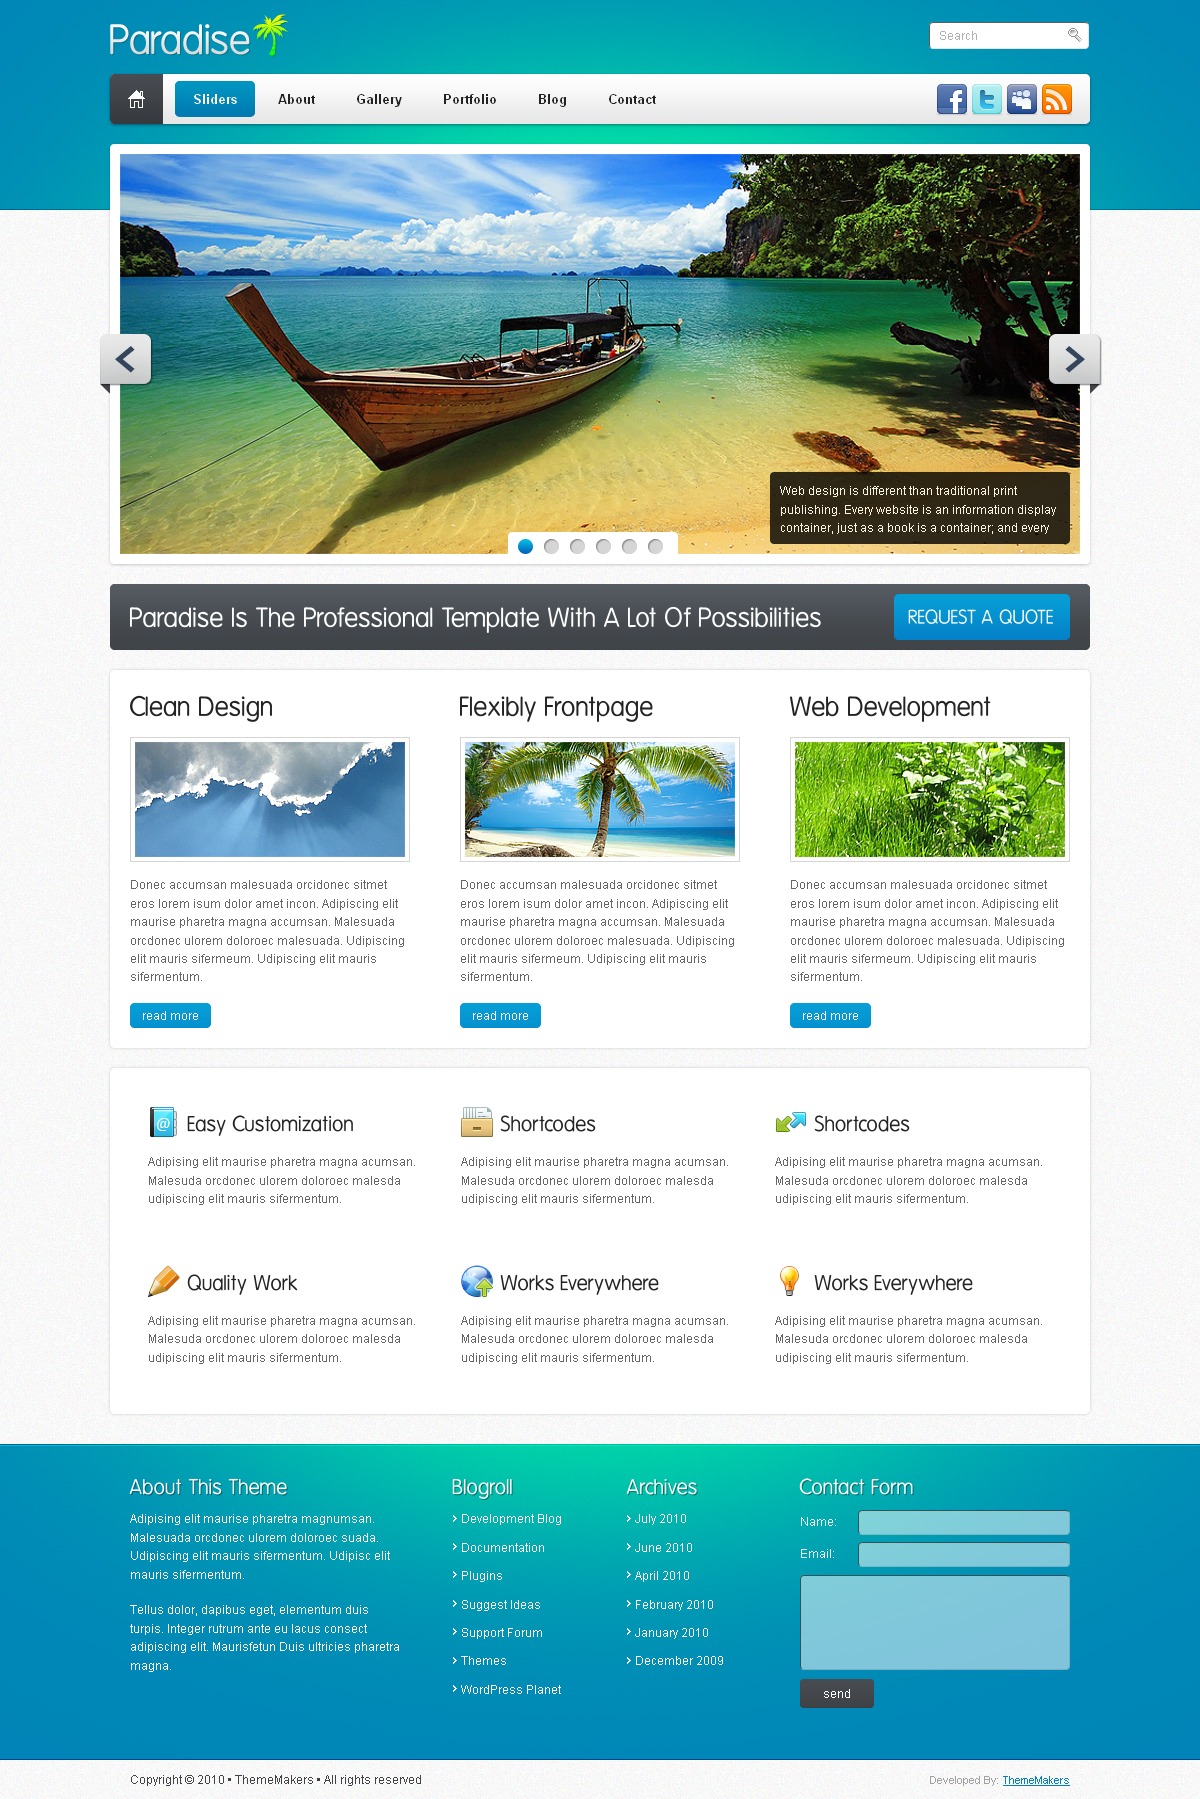 Paradise Professional xHTML Template